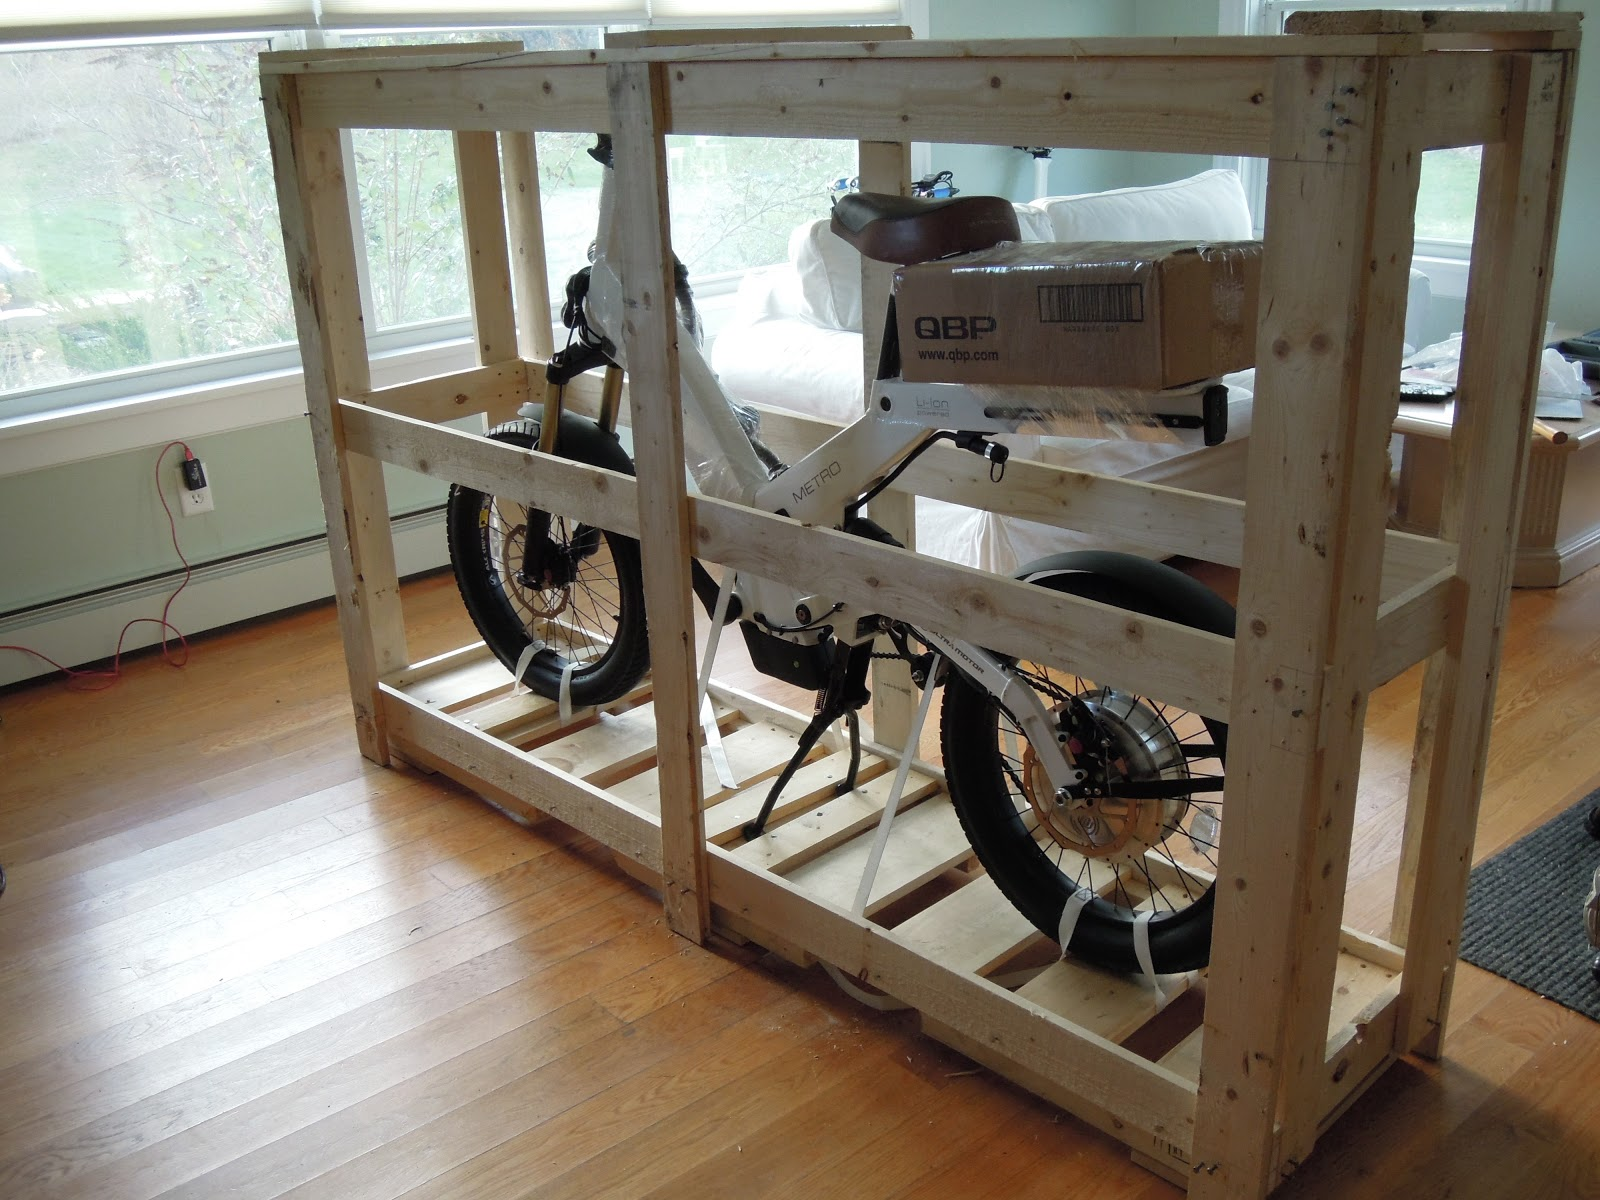 Frame and Wheel Selling Services: Frame and Wheel ships